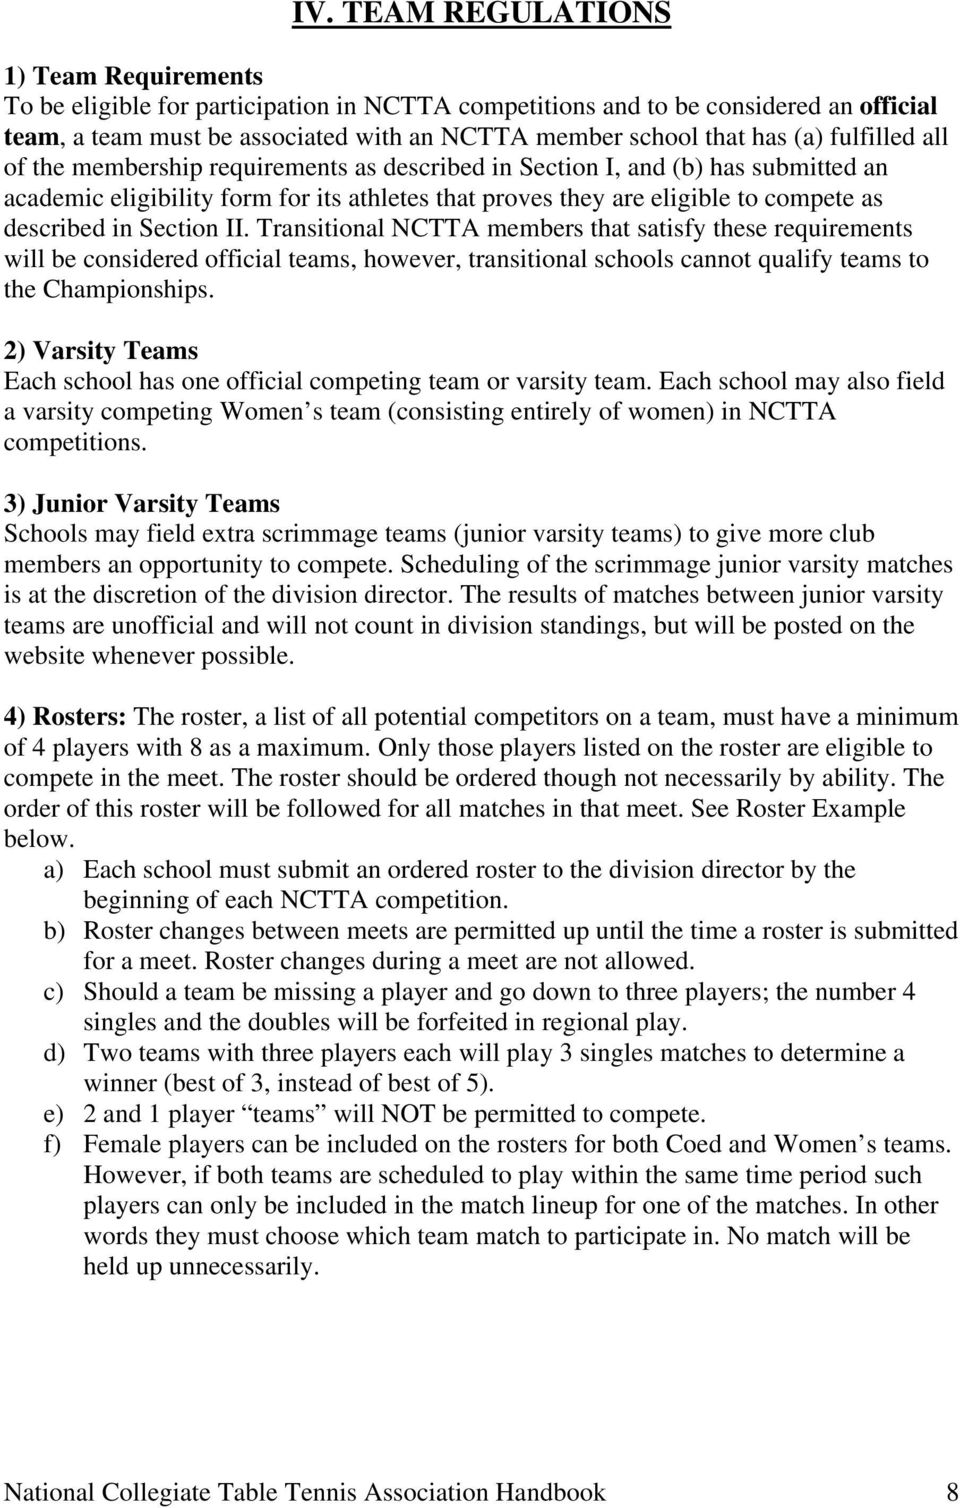 in Section II. Transitional NCTTA members that satisfy these requirements will be considered official teams, however, transitional schools cannot qualify teams to the Championships.